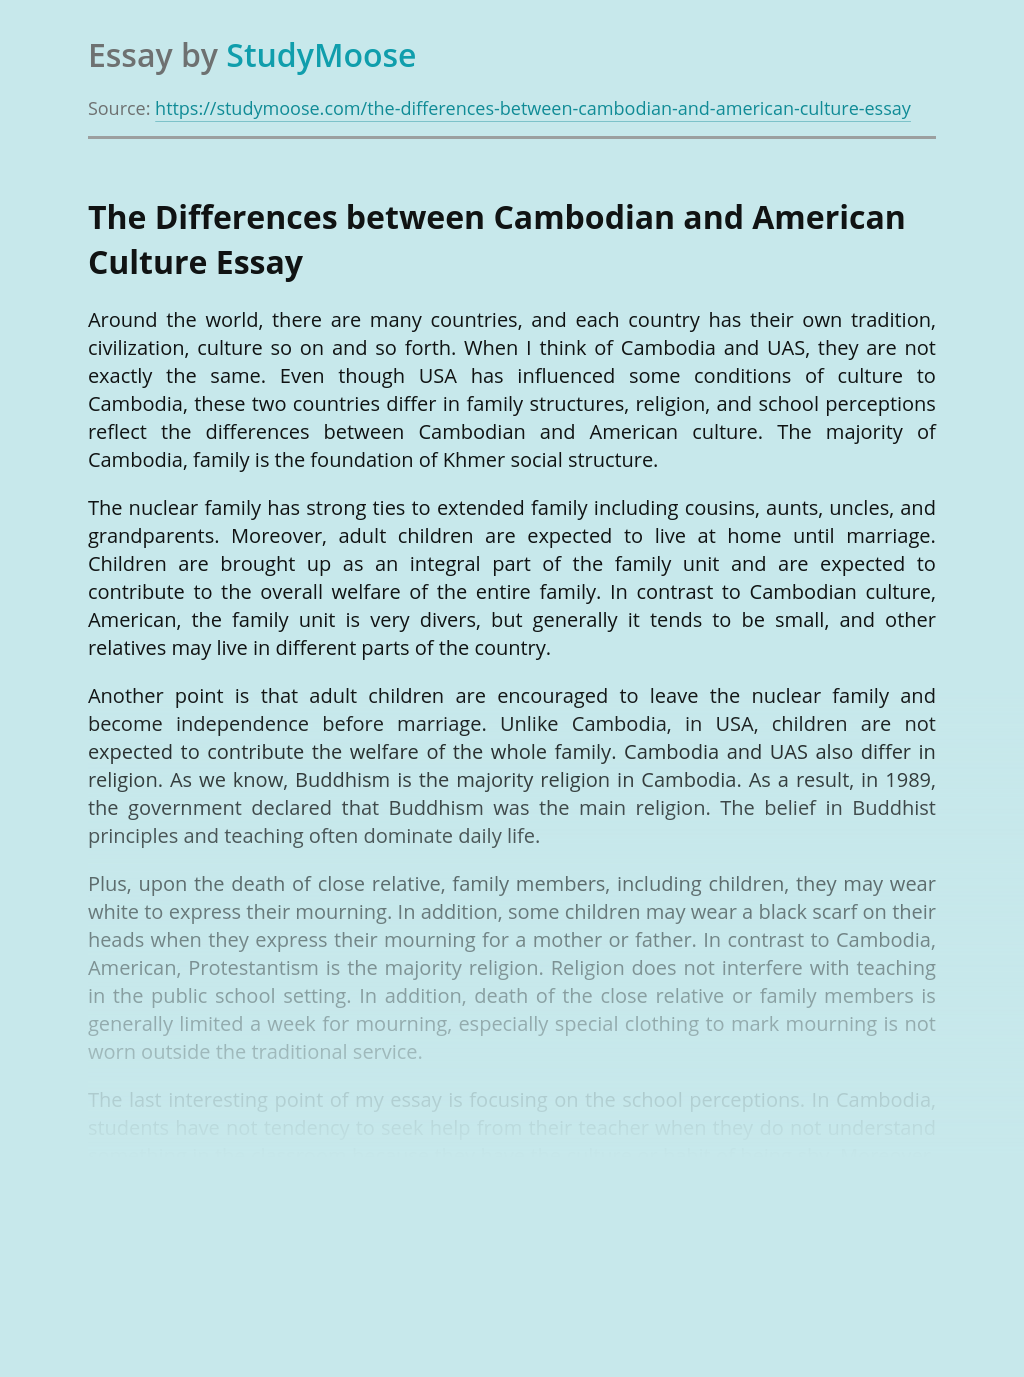 The Differences between Cambodian and American Culture